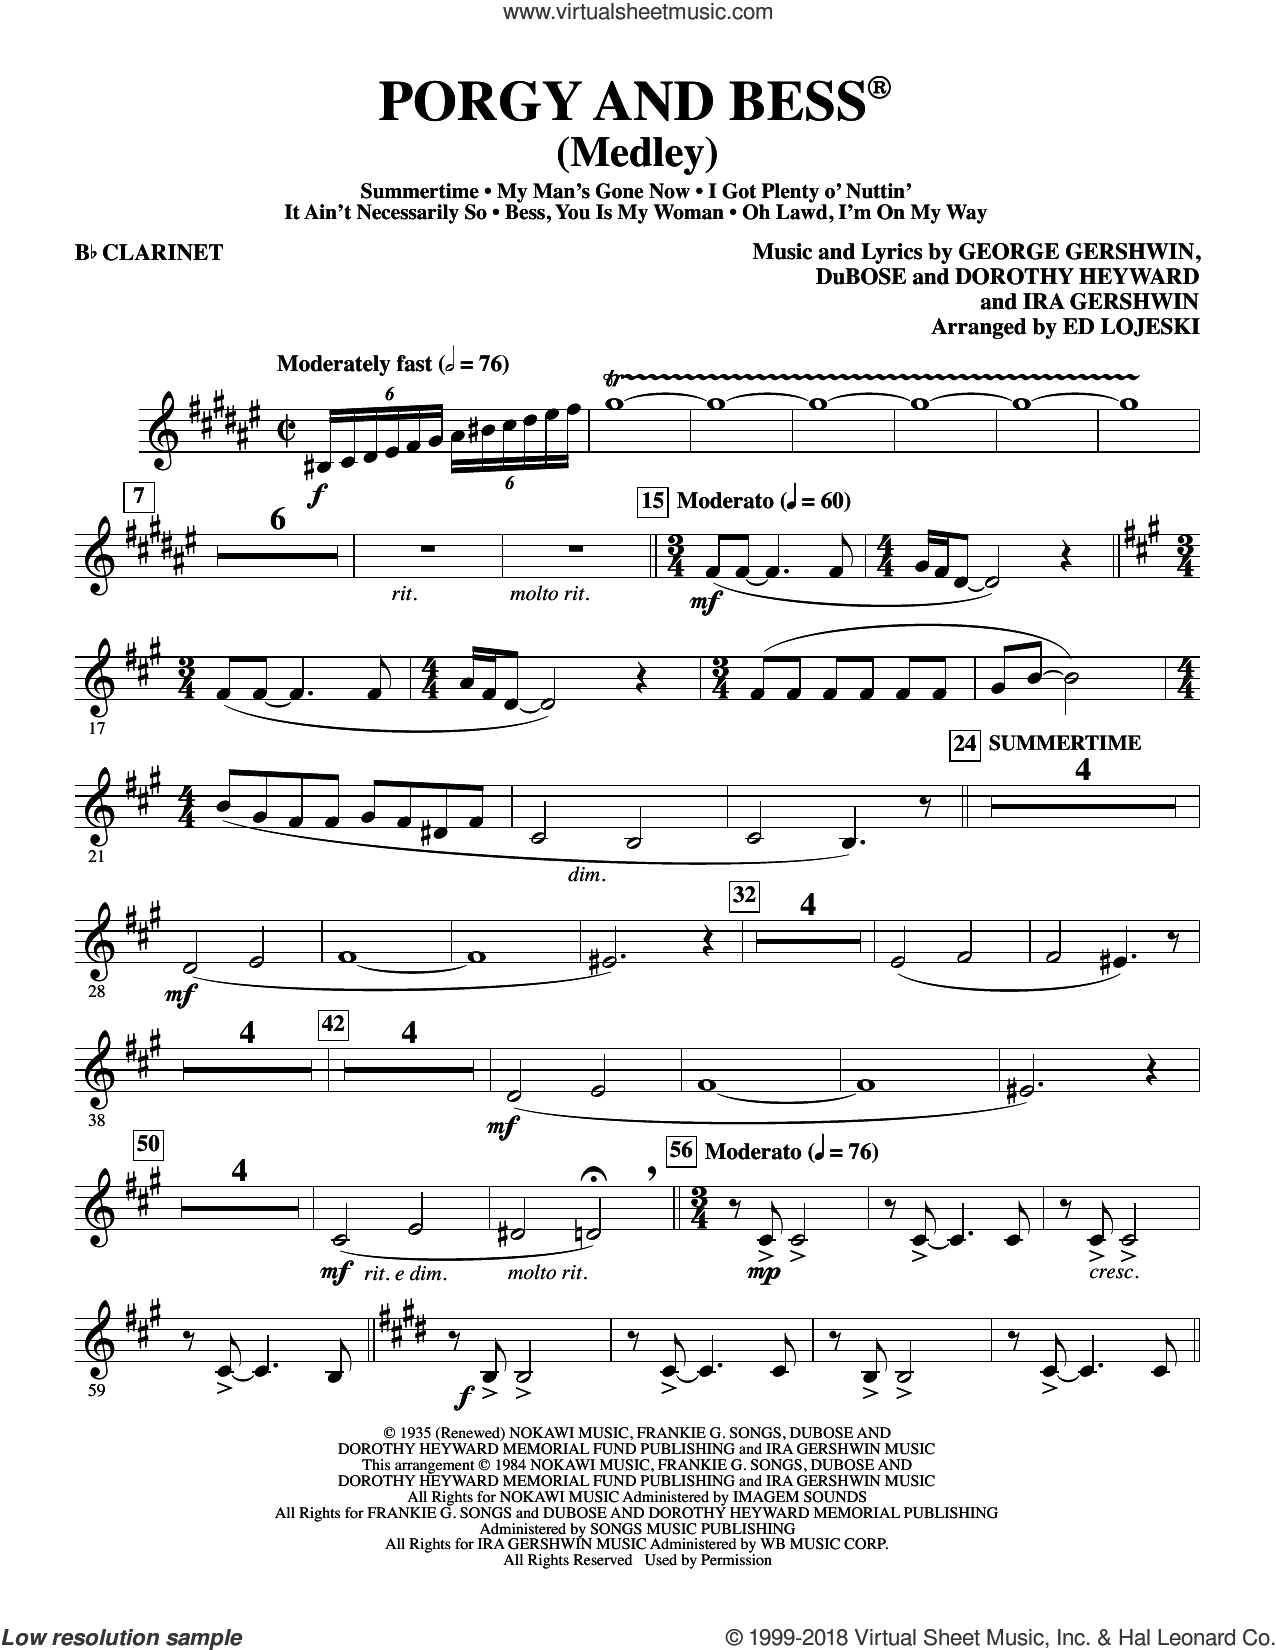 Porgy and Bess (Medley) sheet music for orchestra/band (Bb clarinet) by George Gershwin, Ed Lojeski, Dorothy Heyward, DuBose Heyward and Ira Gershwin, intermediate skill level